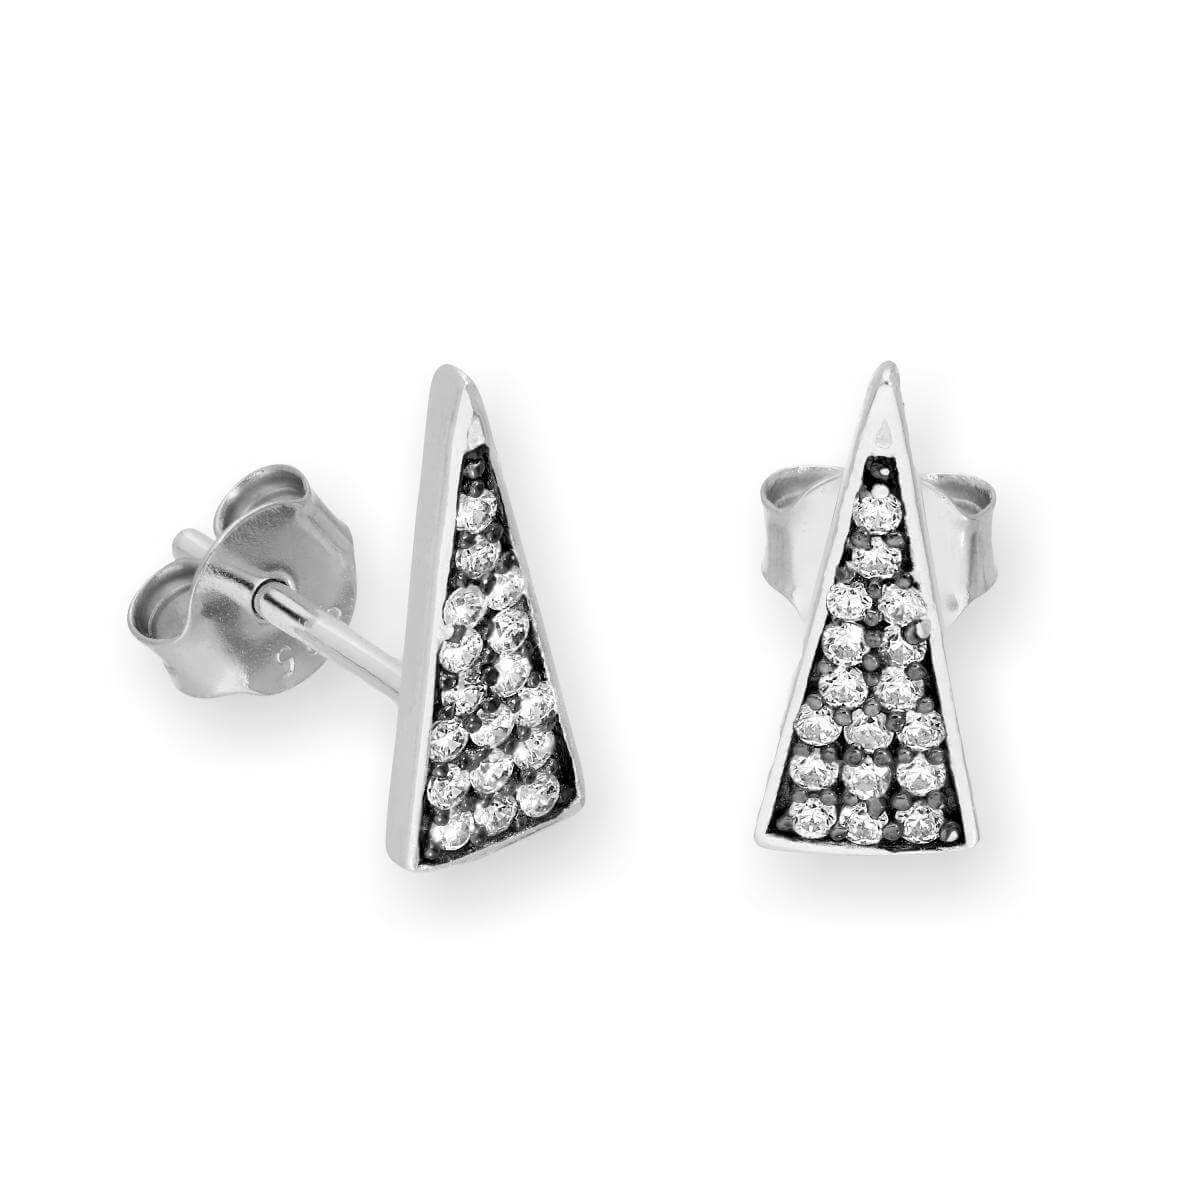 Sterling Silver & Clear CZ Crystal Spike Triangle Stud Earrings